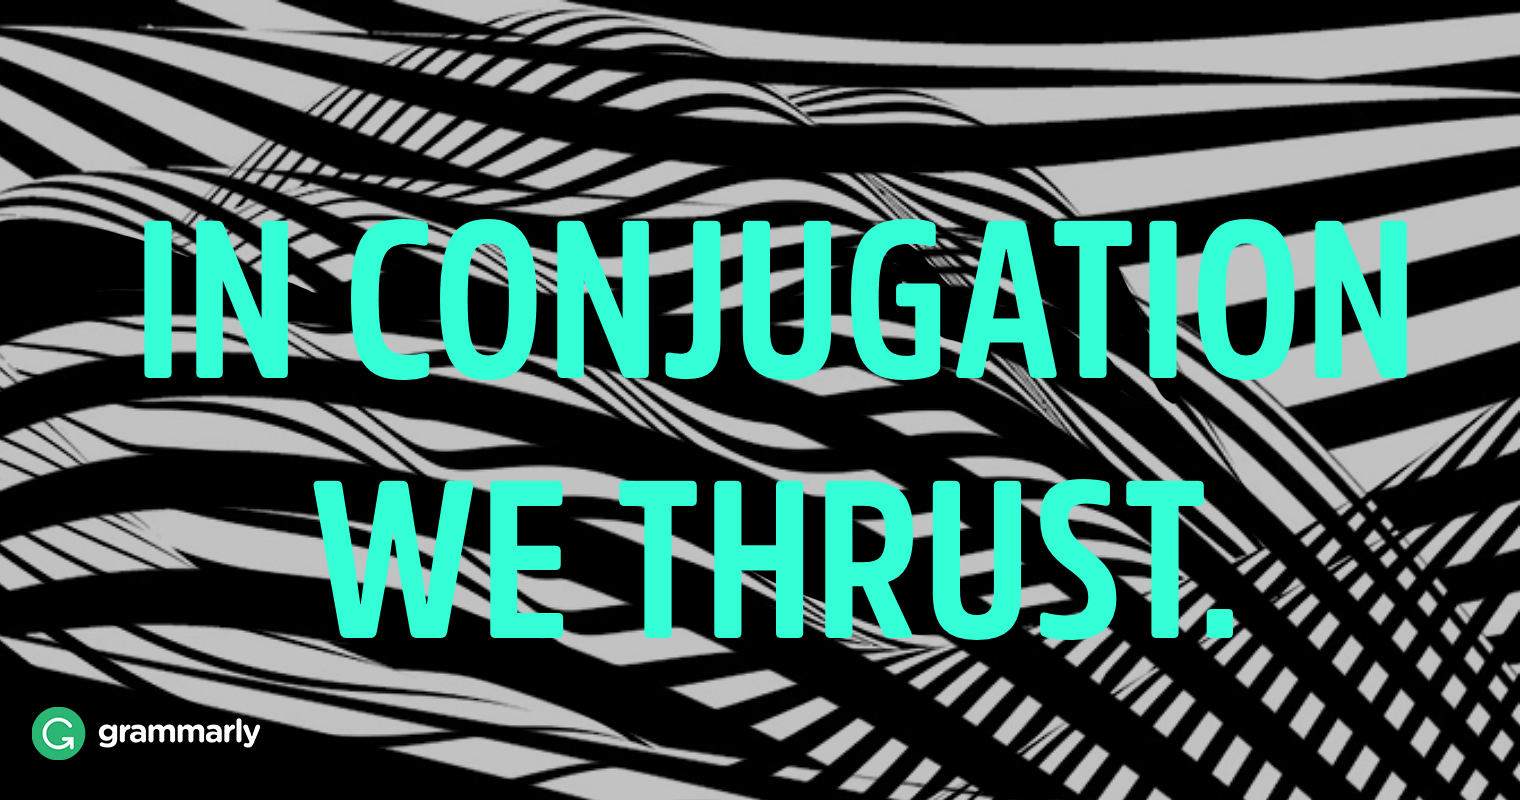 In conjugation we thrust.